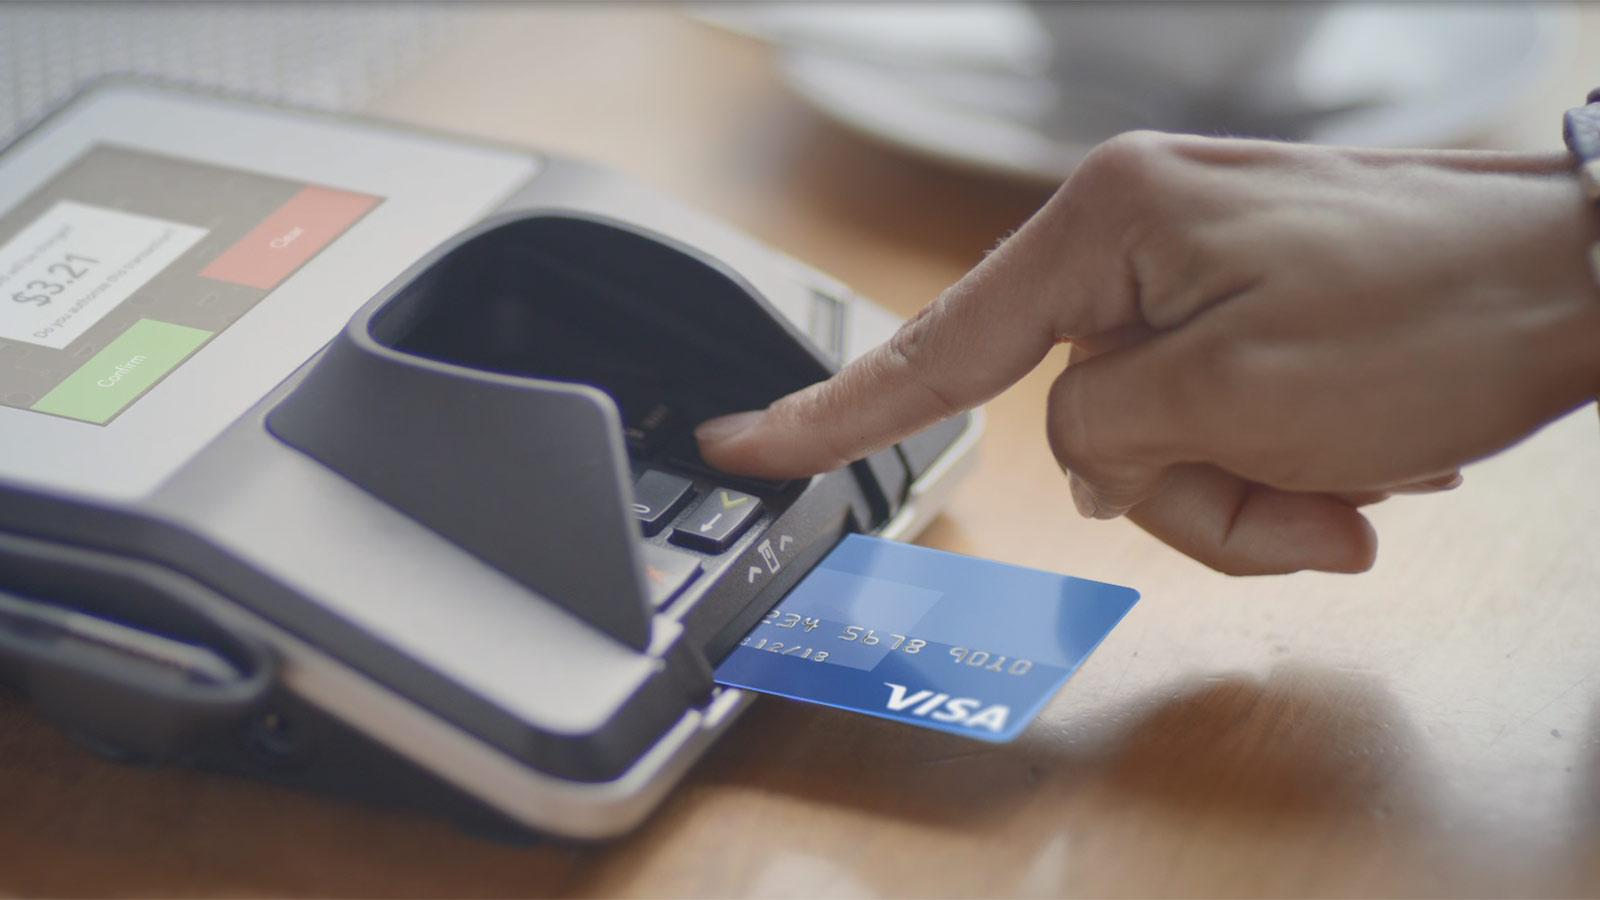 Visa chip card inserted in a paying machine